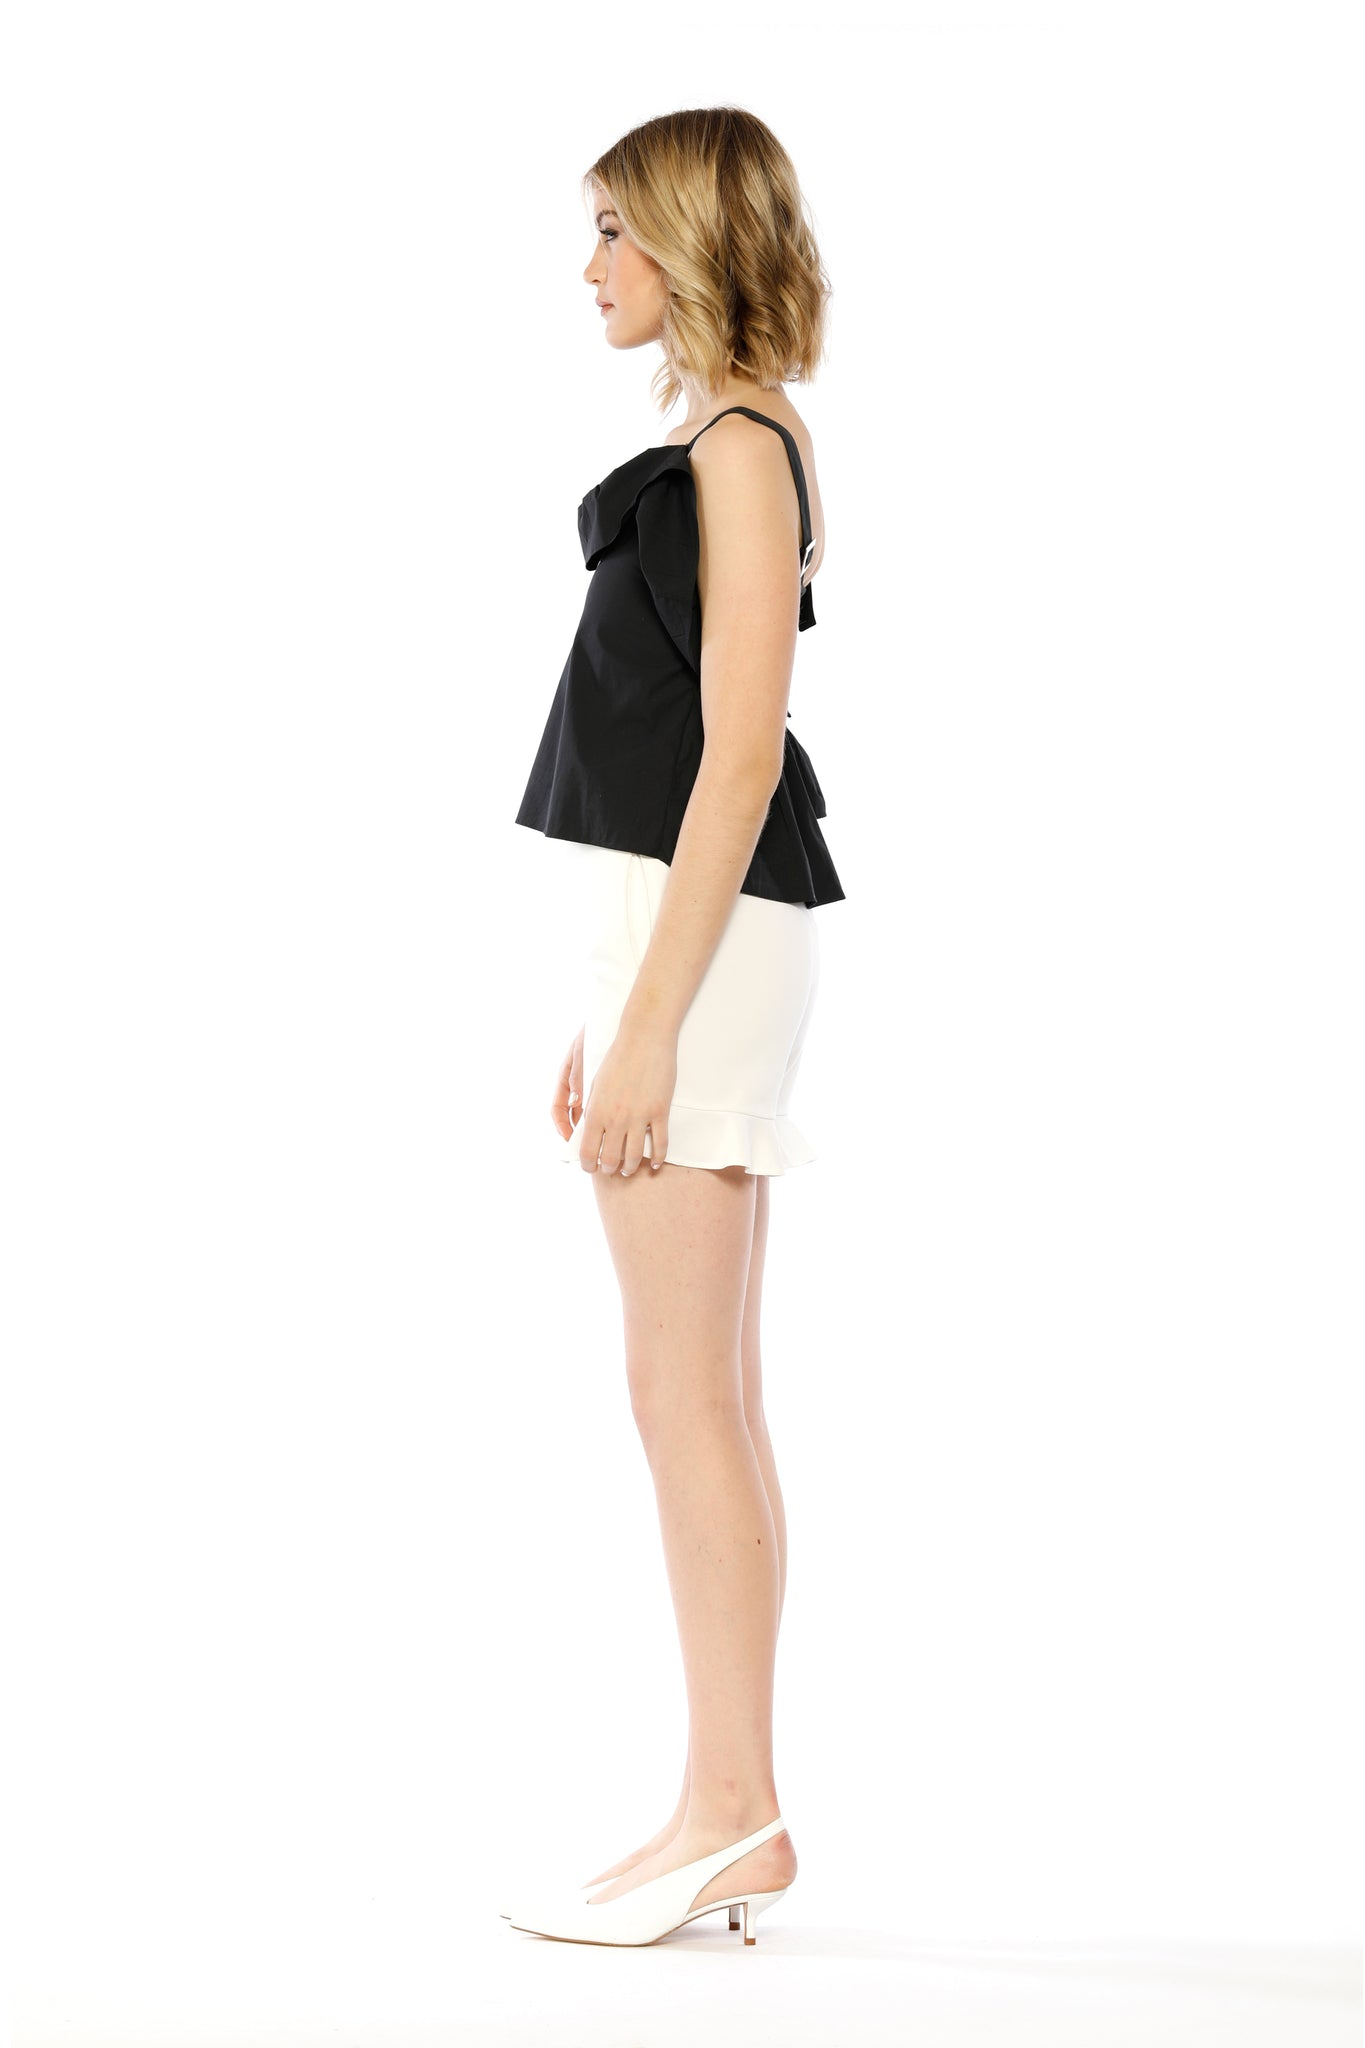 Side view of Kim Top, black adjustable strap tank top with ruffled collar, flowing side frill, and one batwing sleeve. 100% Cotton and Machine-washable.